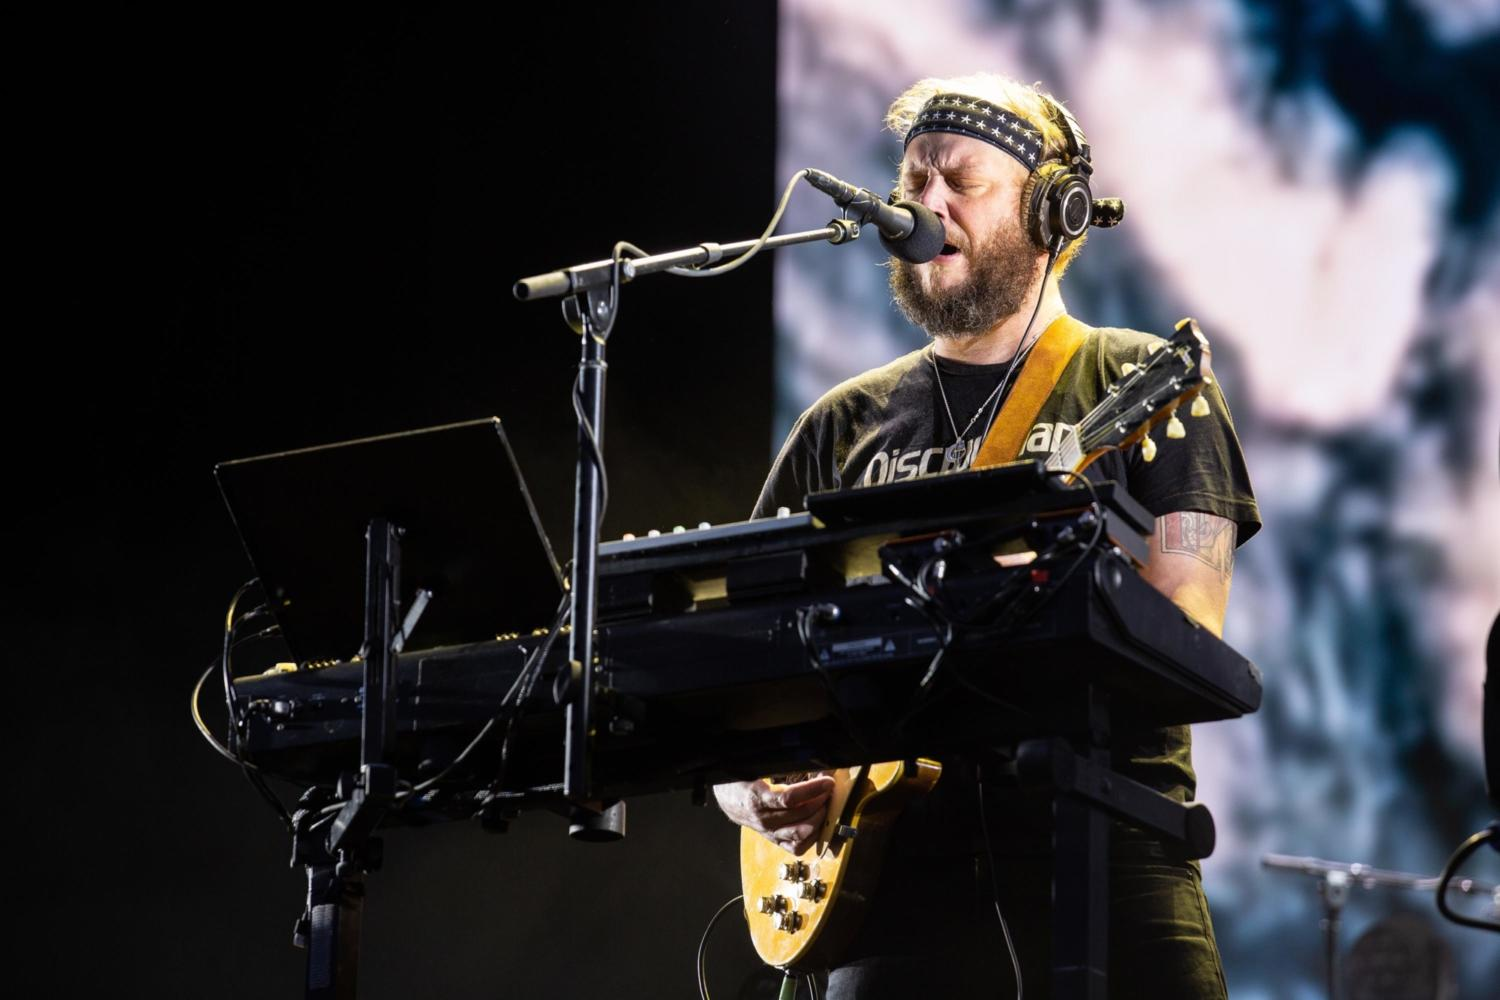 Bon Iver brings All Points East 2019 to a delicate but grandiose close